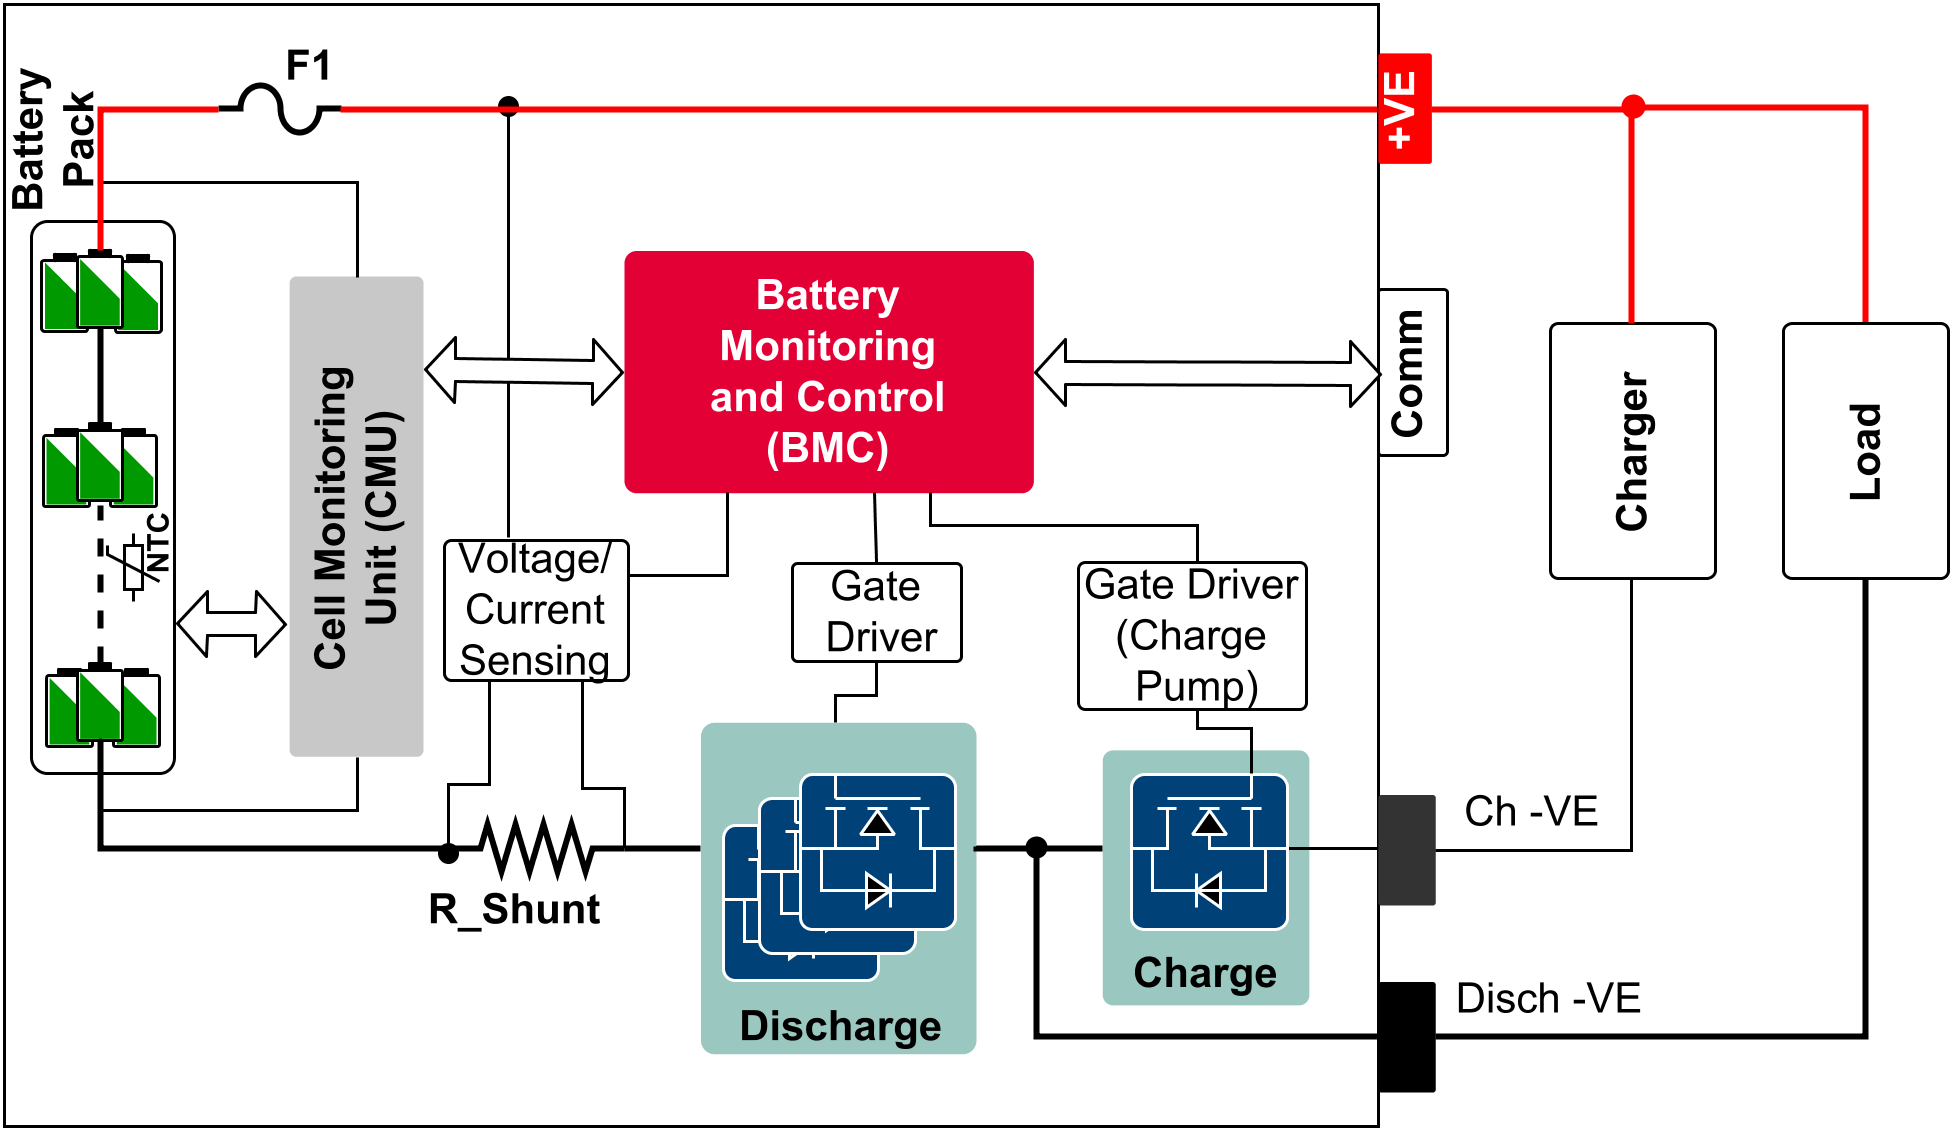 https://edit.infineon.com/cms/_images/application/solutions/BMS-Separate-Charge-and-Discharge-Port-with-LS-Protection.PNG